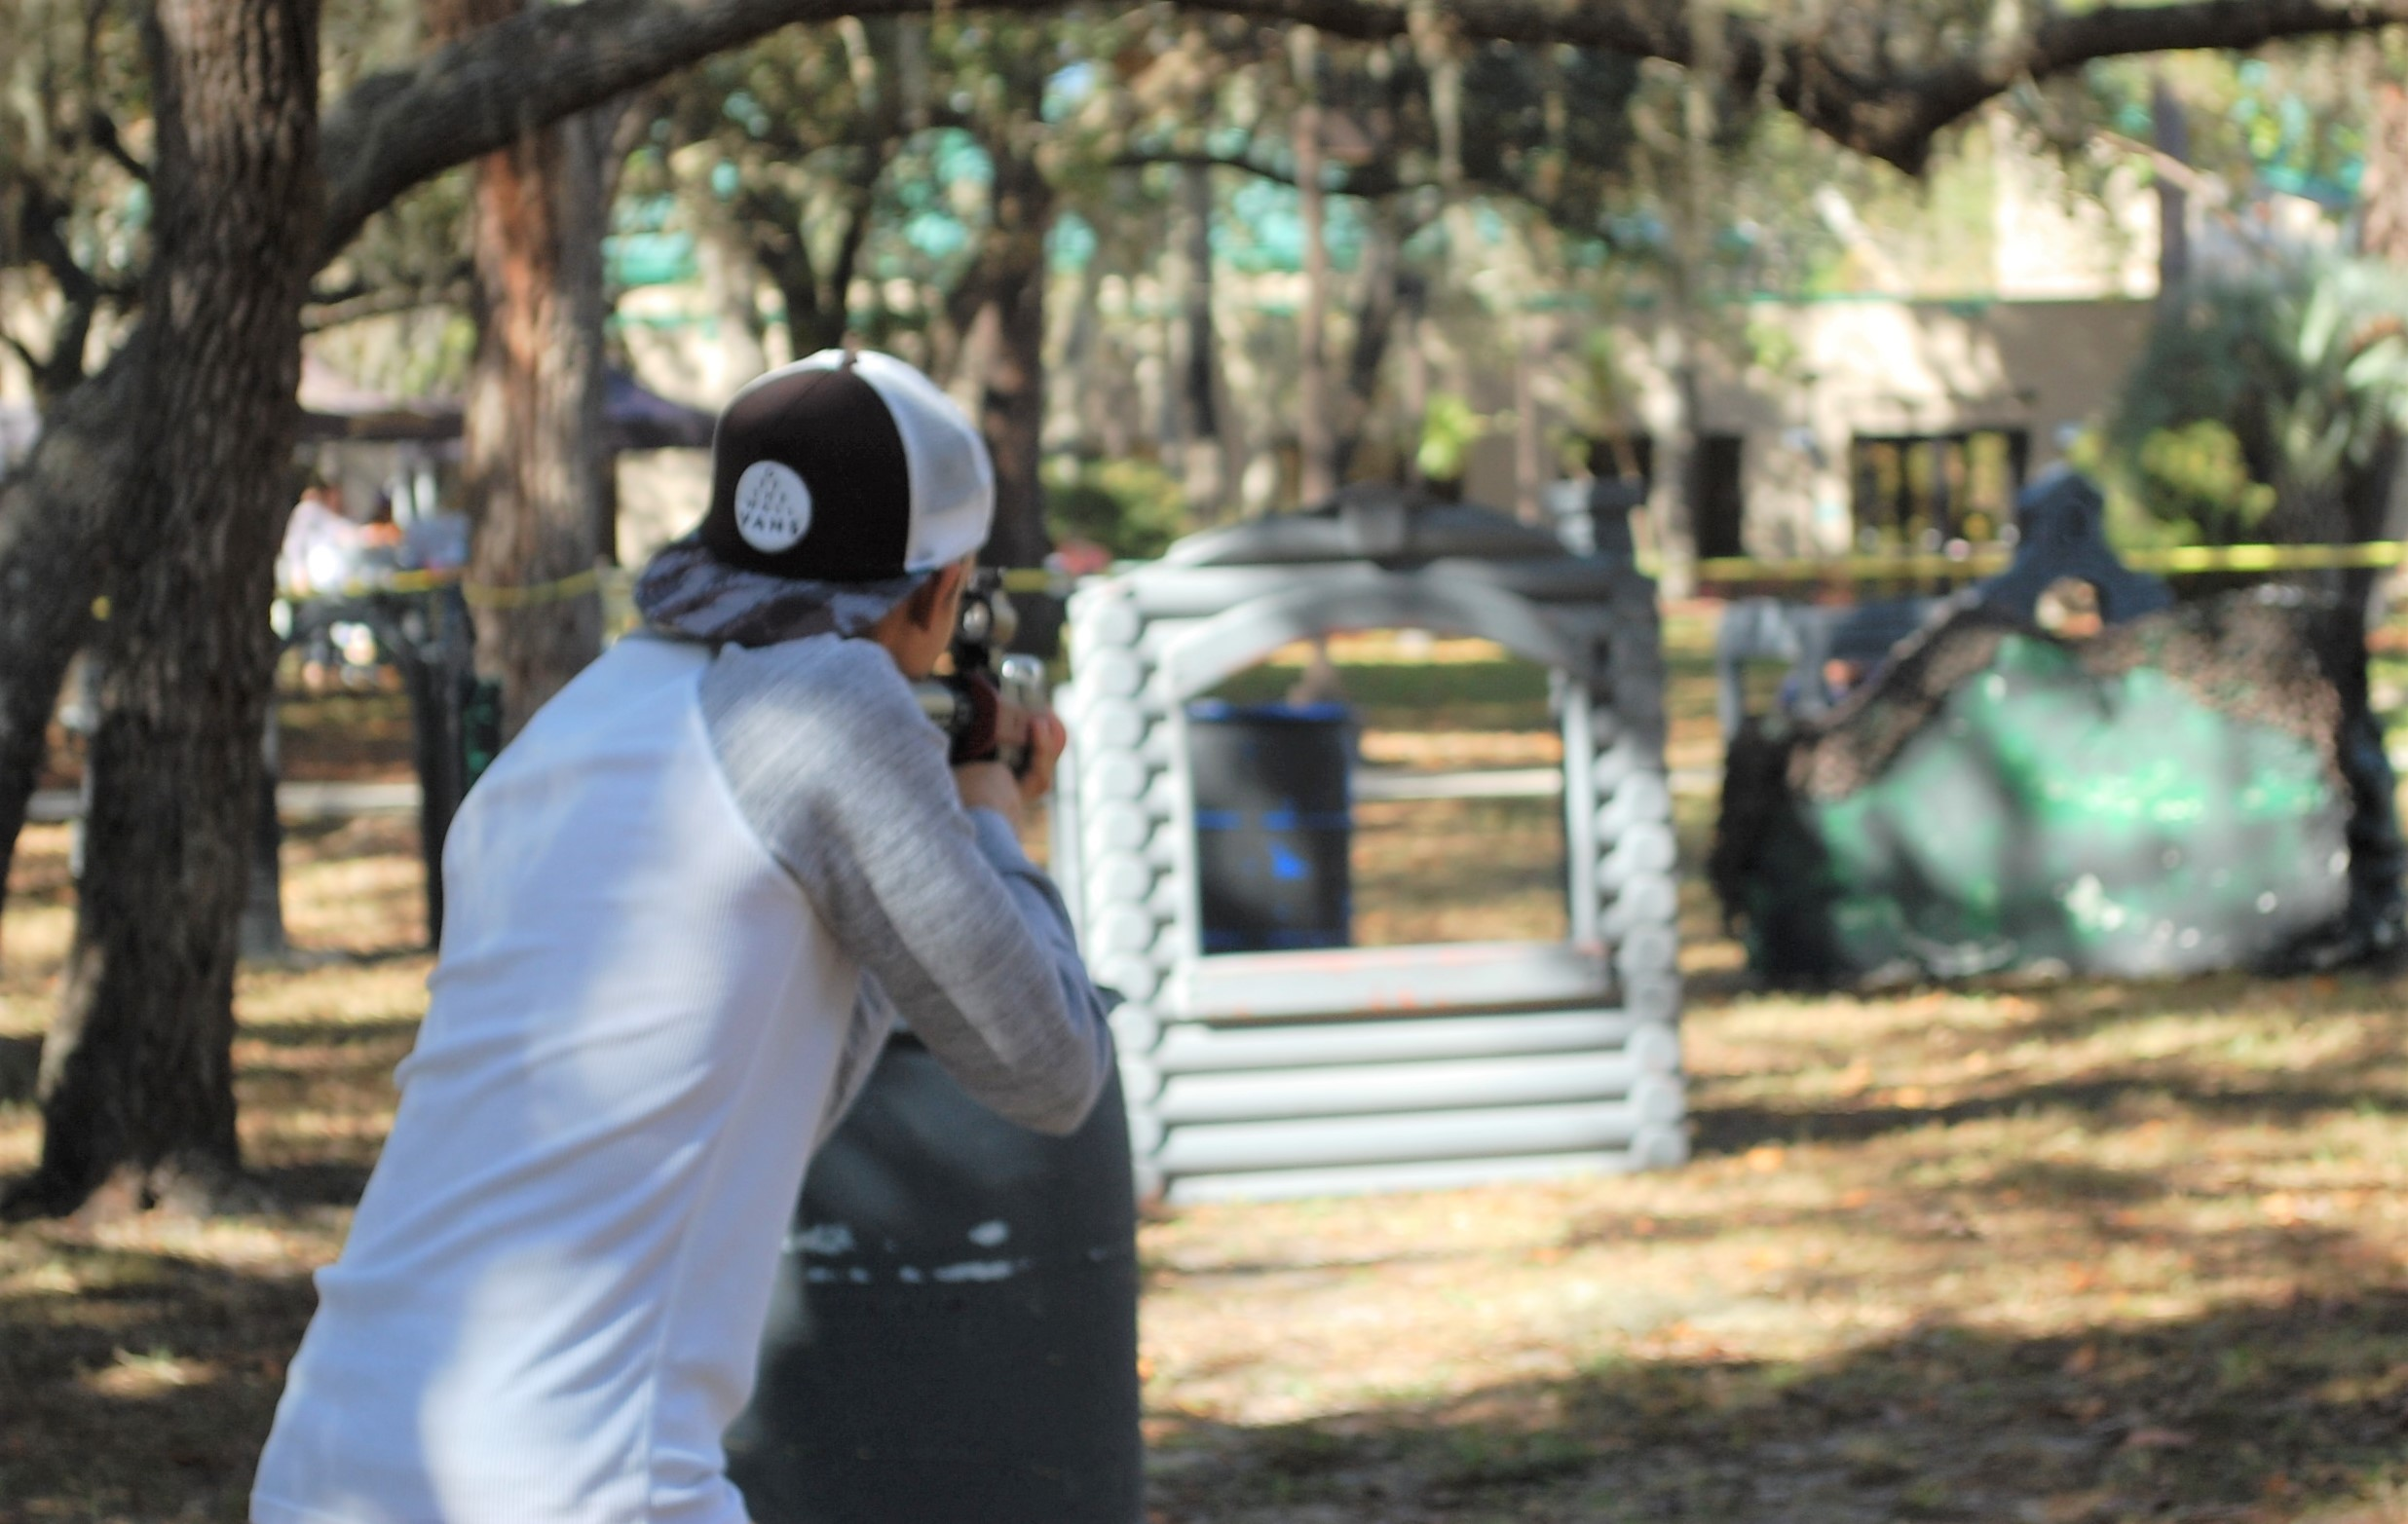 College Events in Florida - Stealth Mobile Laser Tag (54)